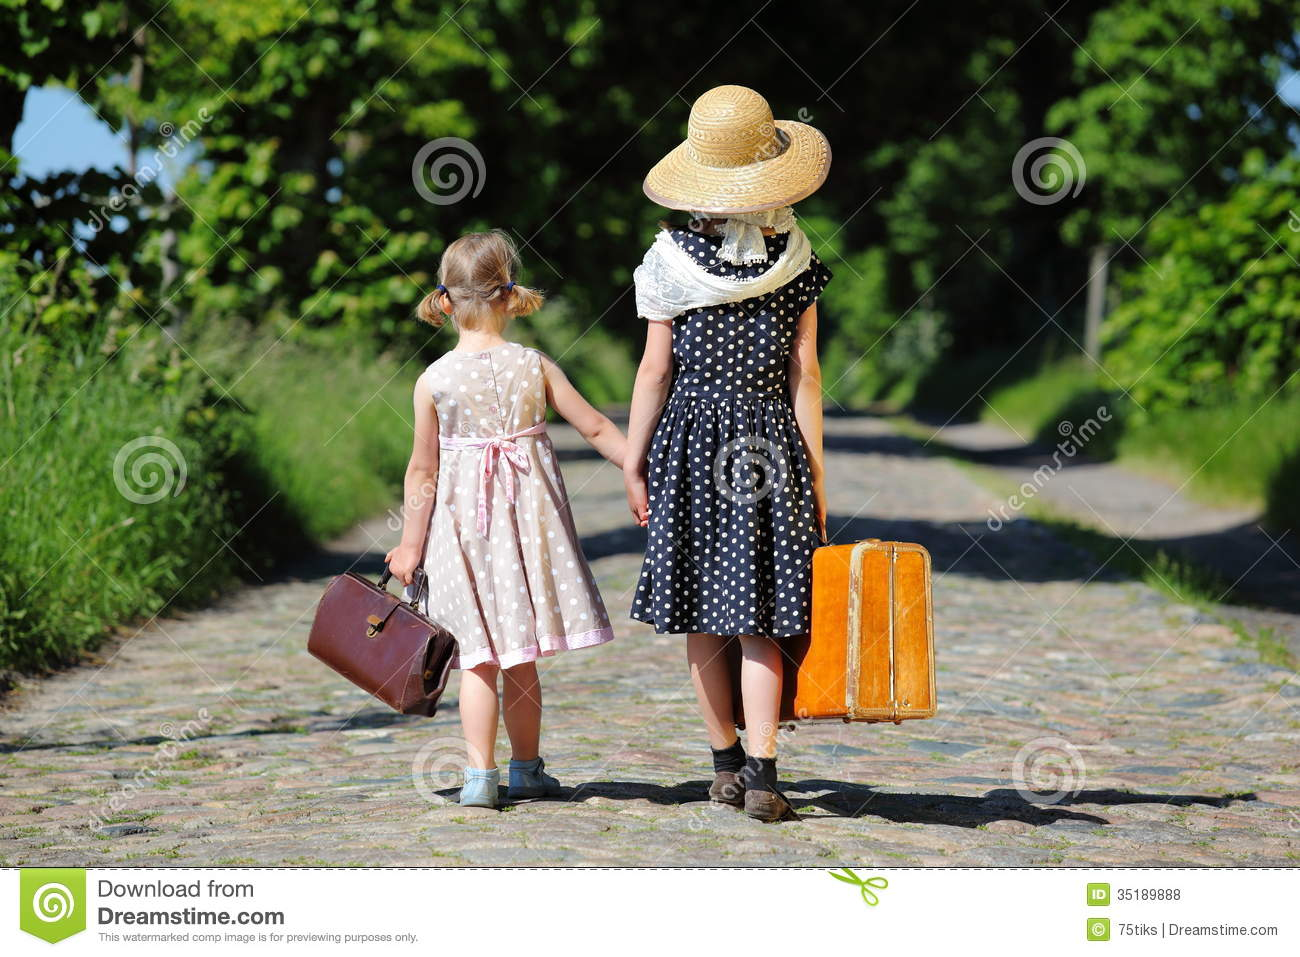 Road Two Little Girls Walking Her Luggage Tree Lined Seen Back on Polka Steps